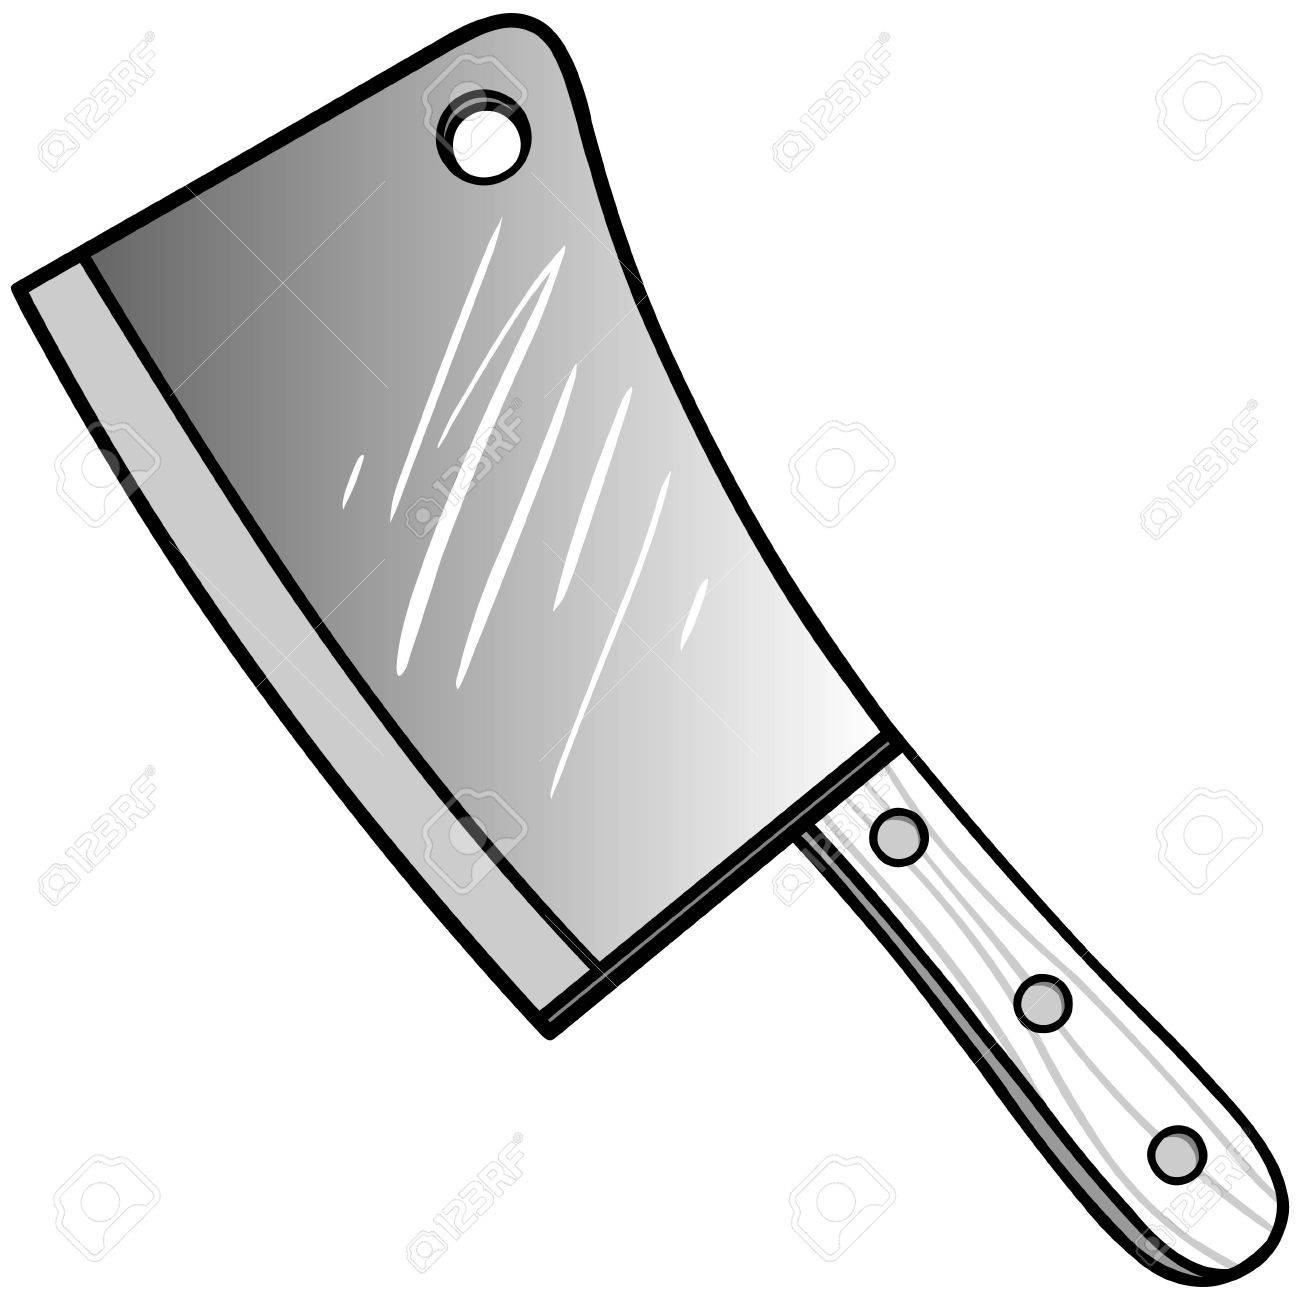 Butcher knife clipart 3 » Clipart Station.